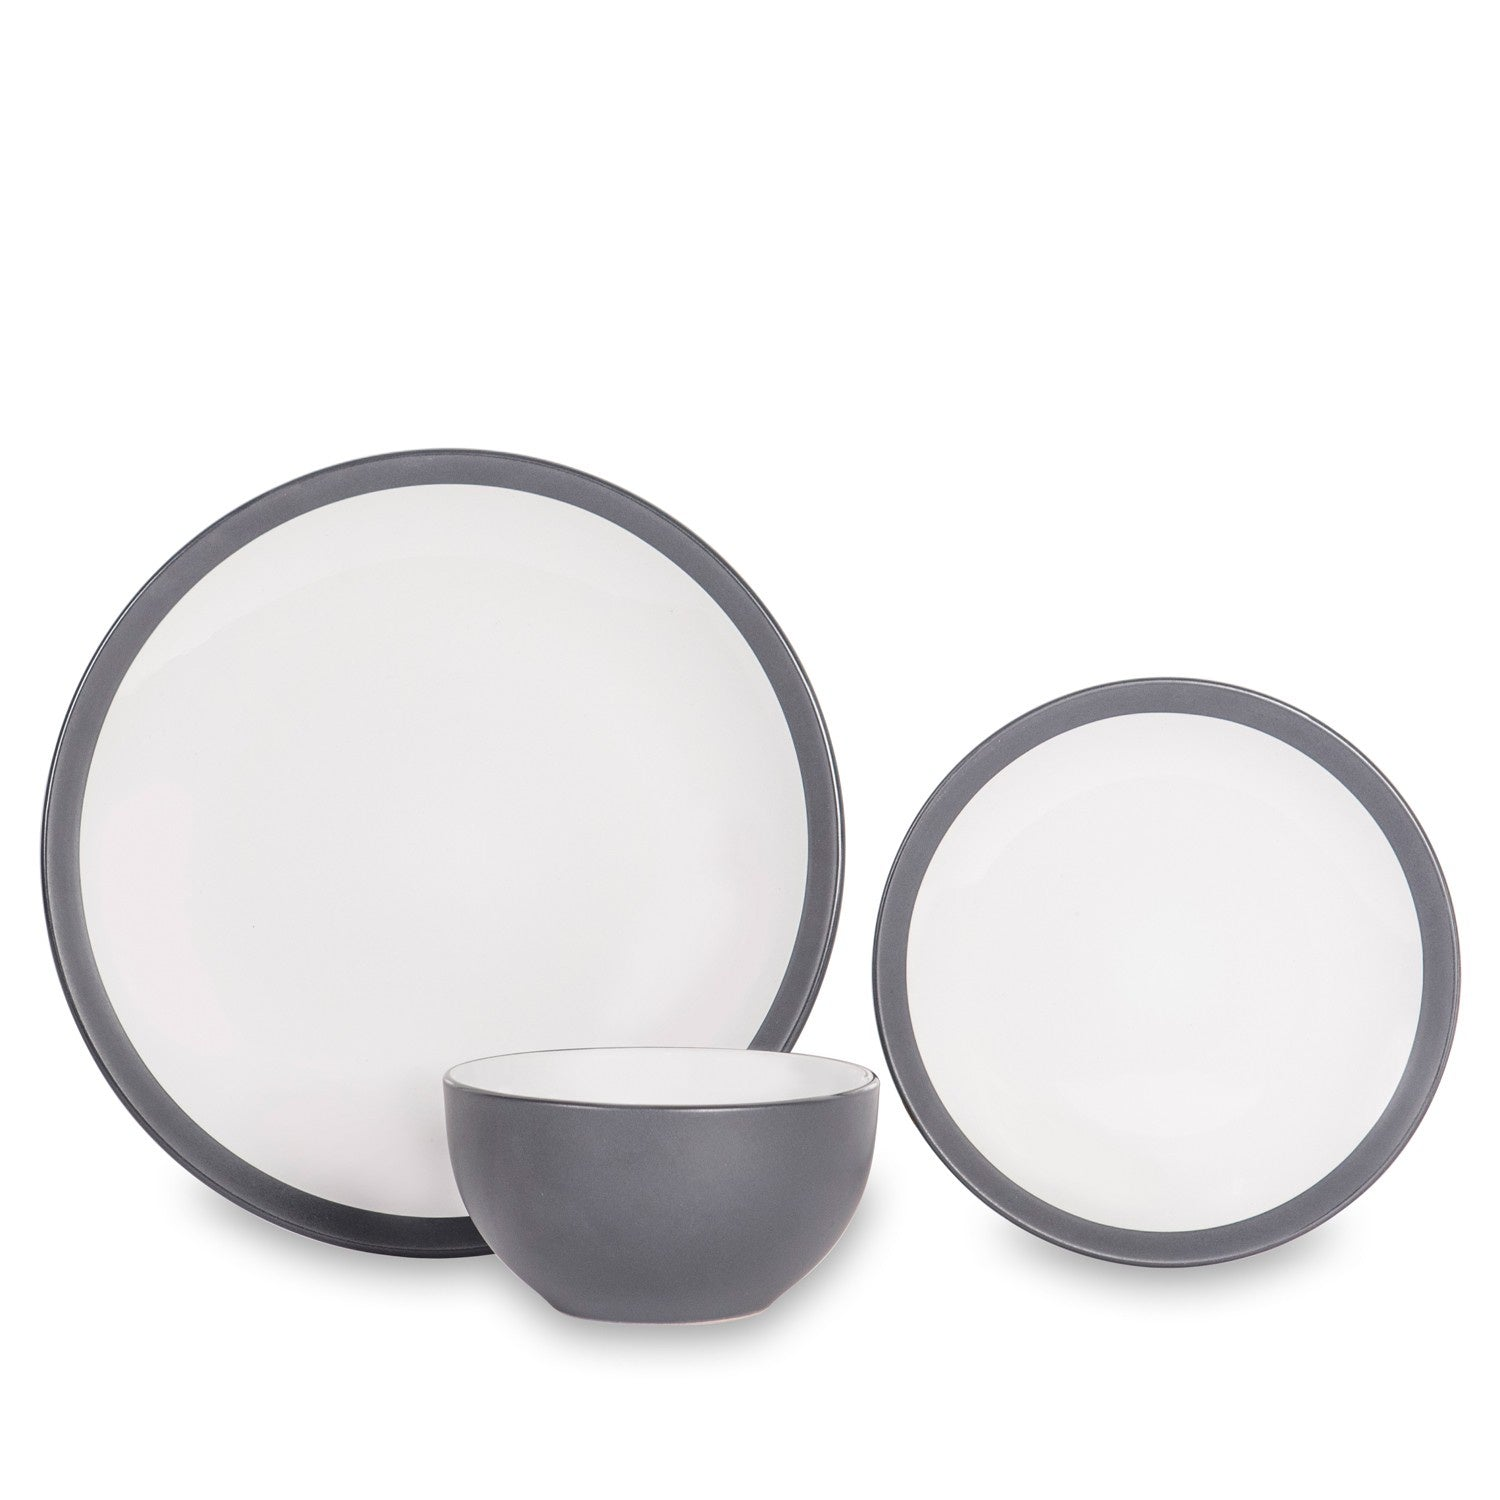 Sabichi Noah Slate Grey 12pc Dinner Set- 184788